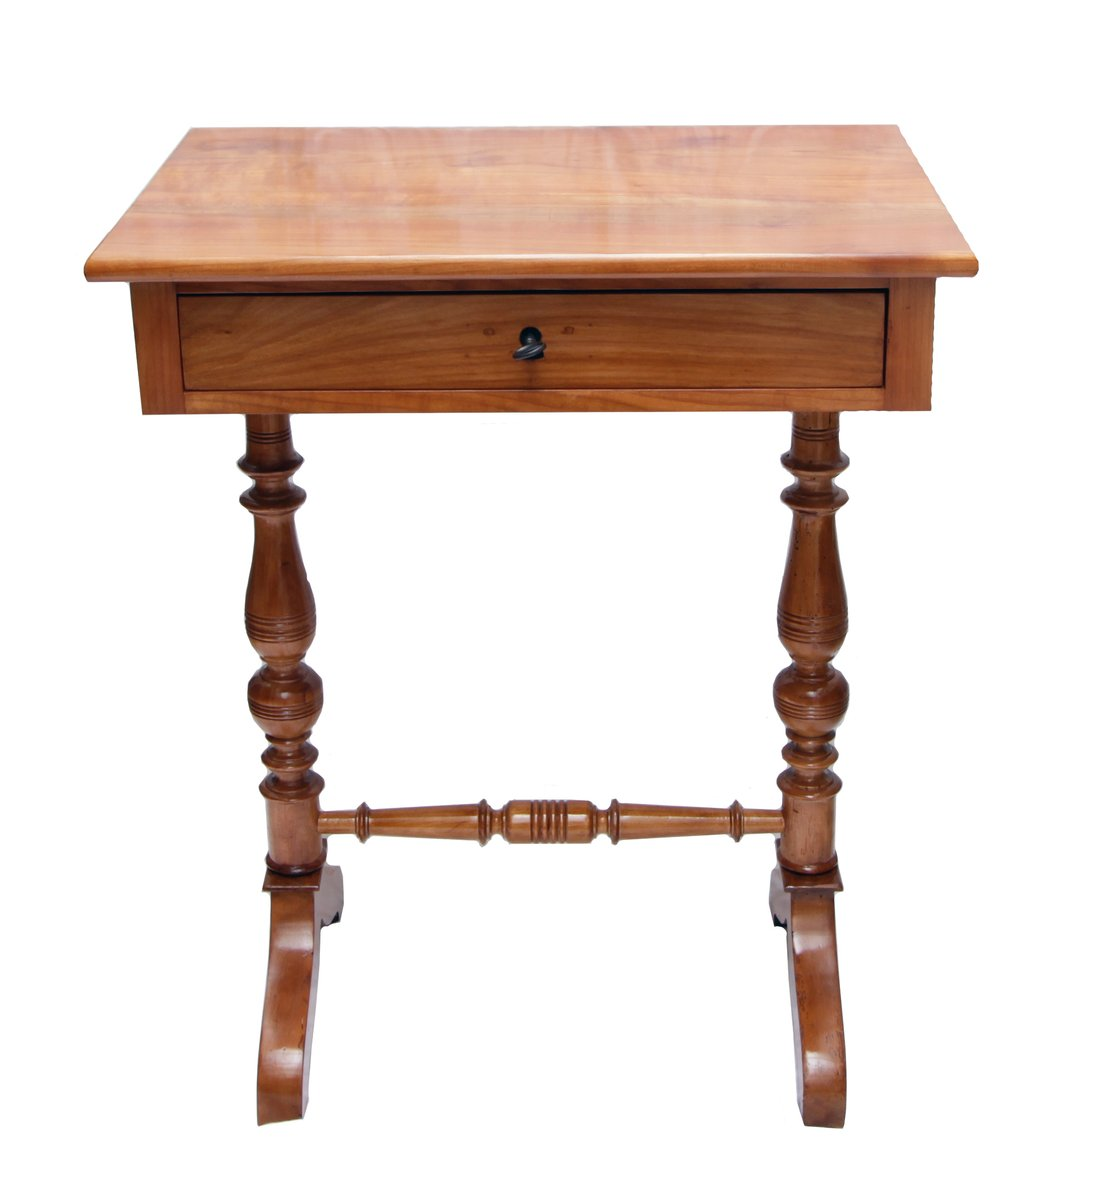 Antique Sewing Table in Cherry - Antique Sewing Table In Cherry For Sale At Pamono